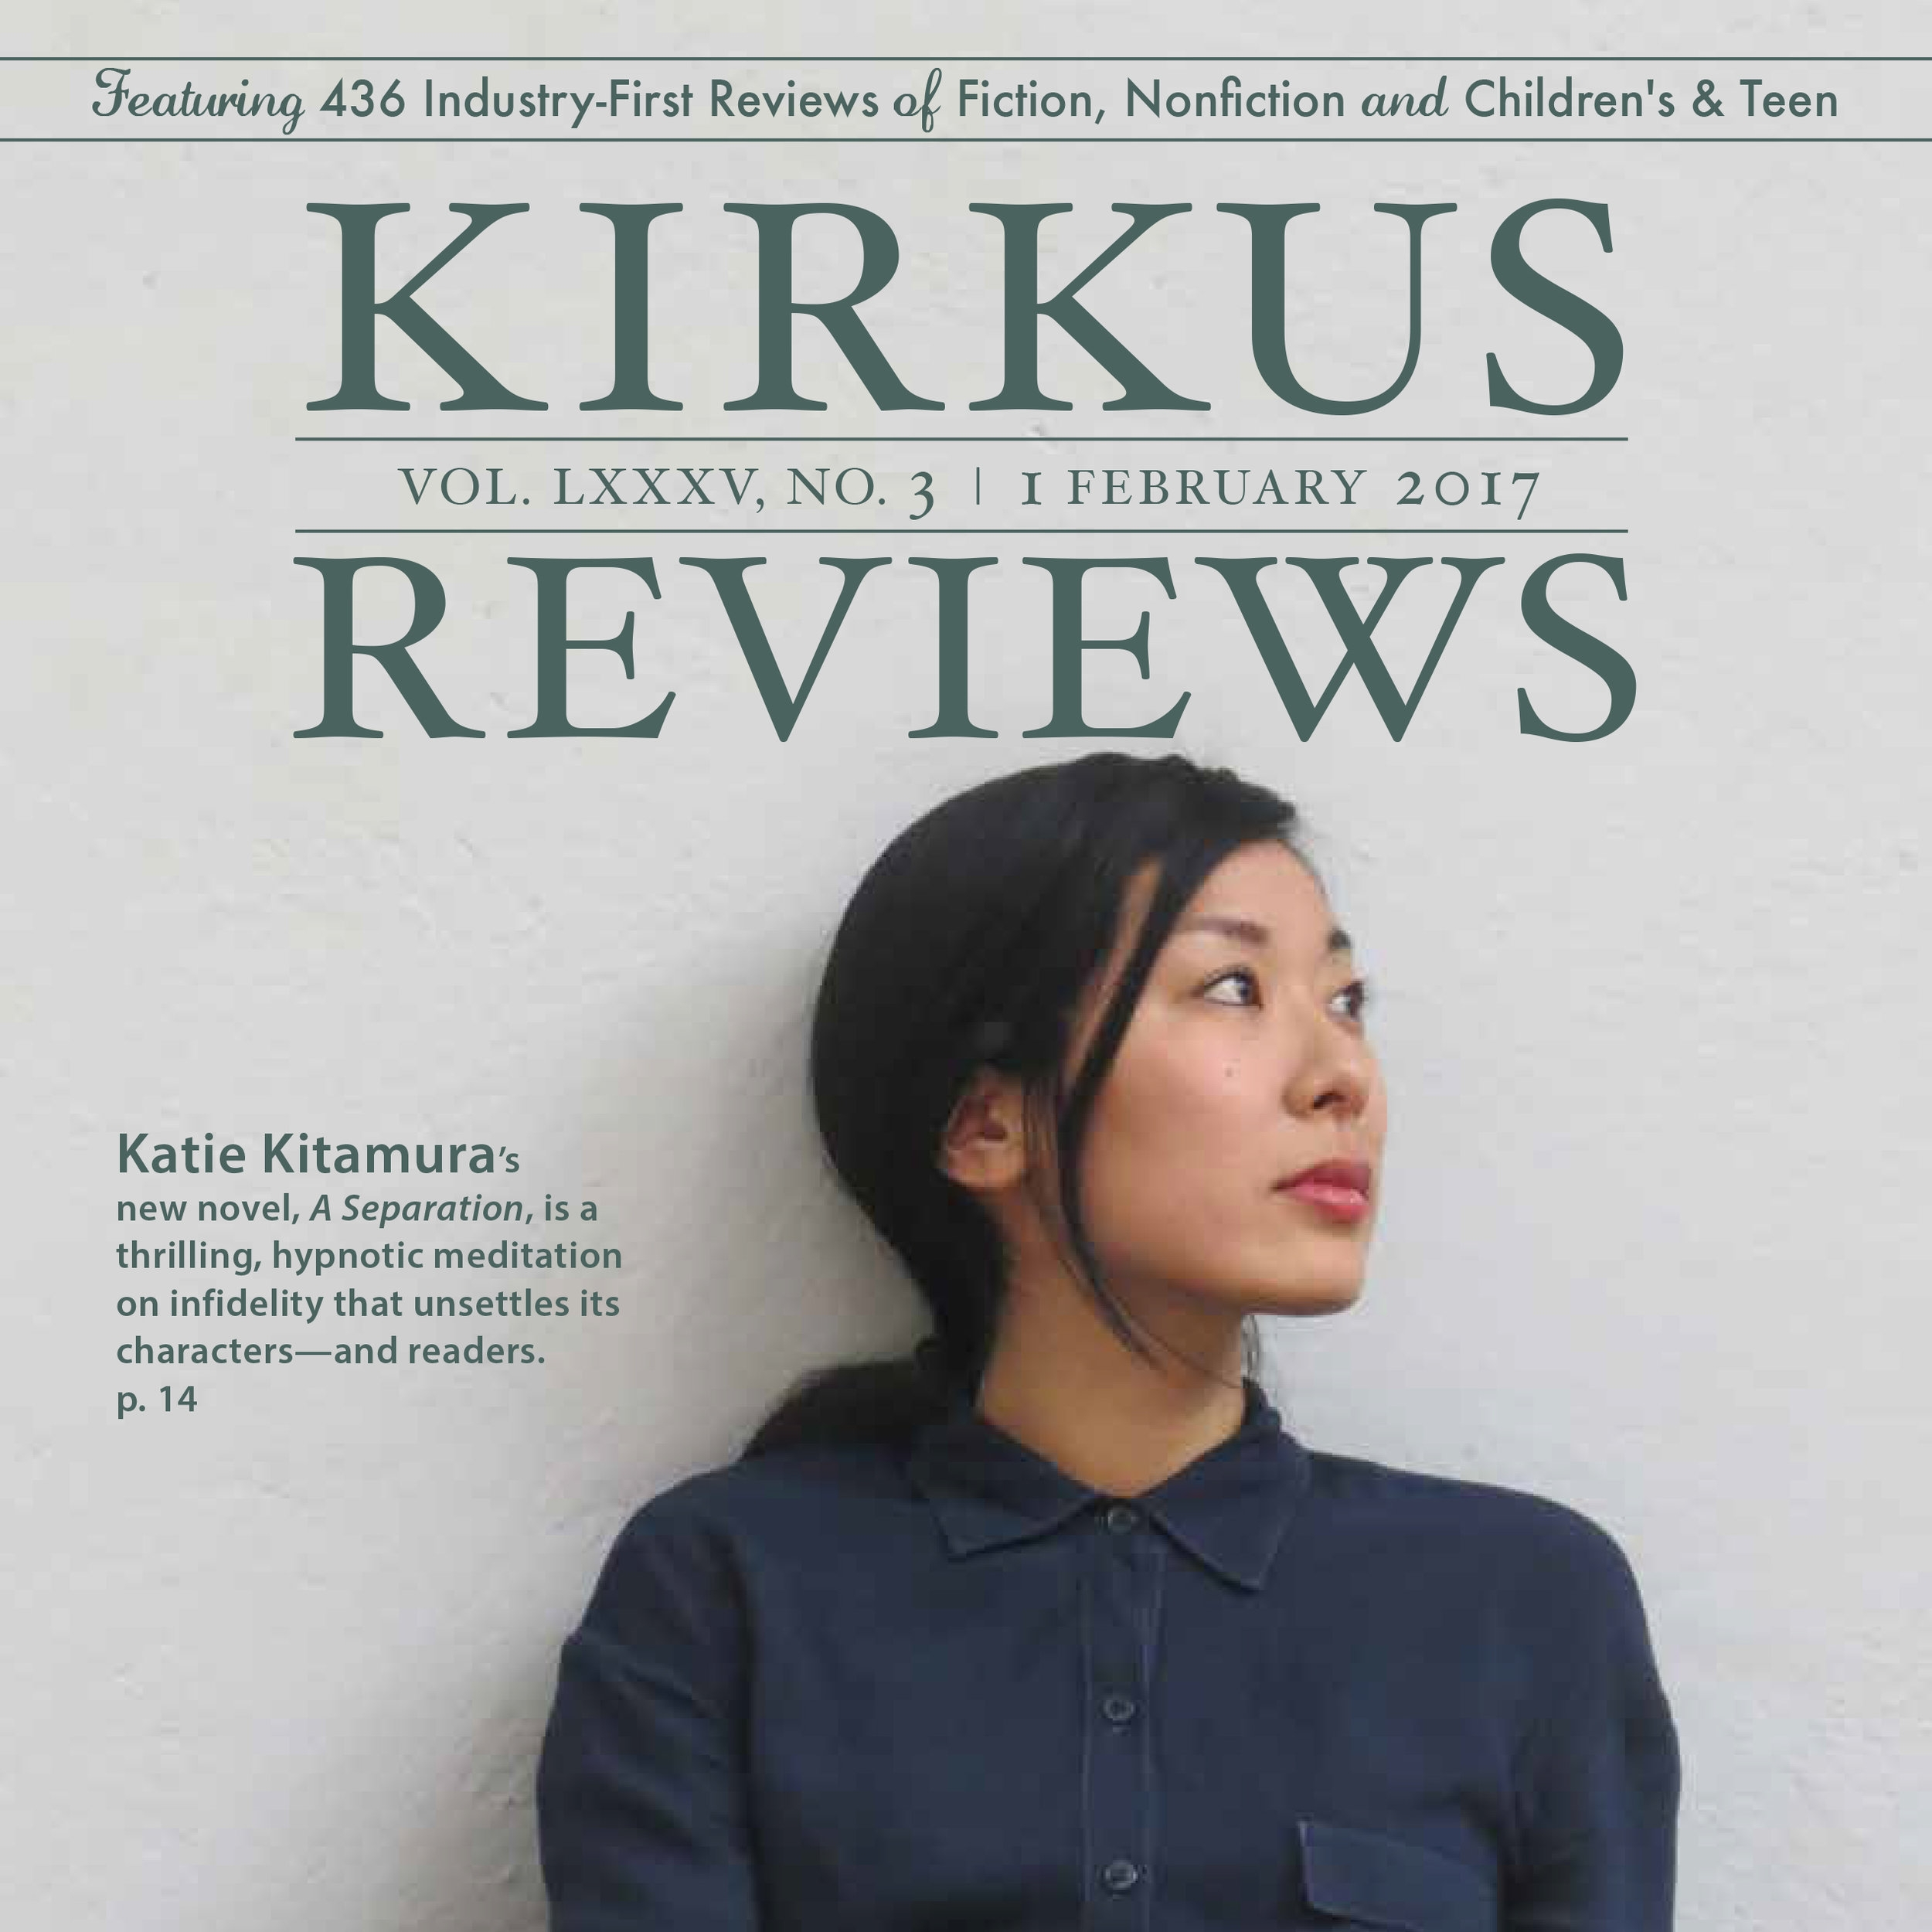 Featured twice in the Kirkus Reviews Magazine (Vol. LXXXIII, No. 13 and Vol. LXXXV, No. 3)